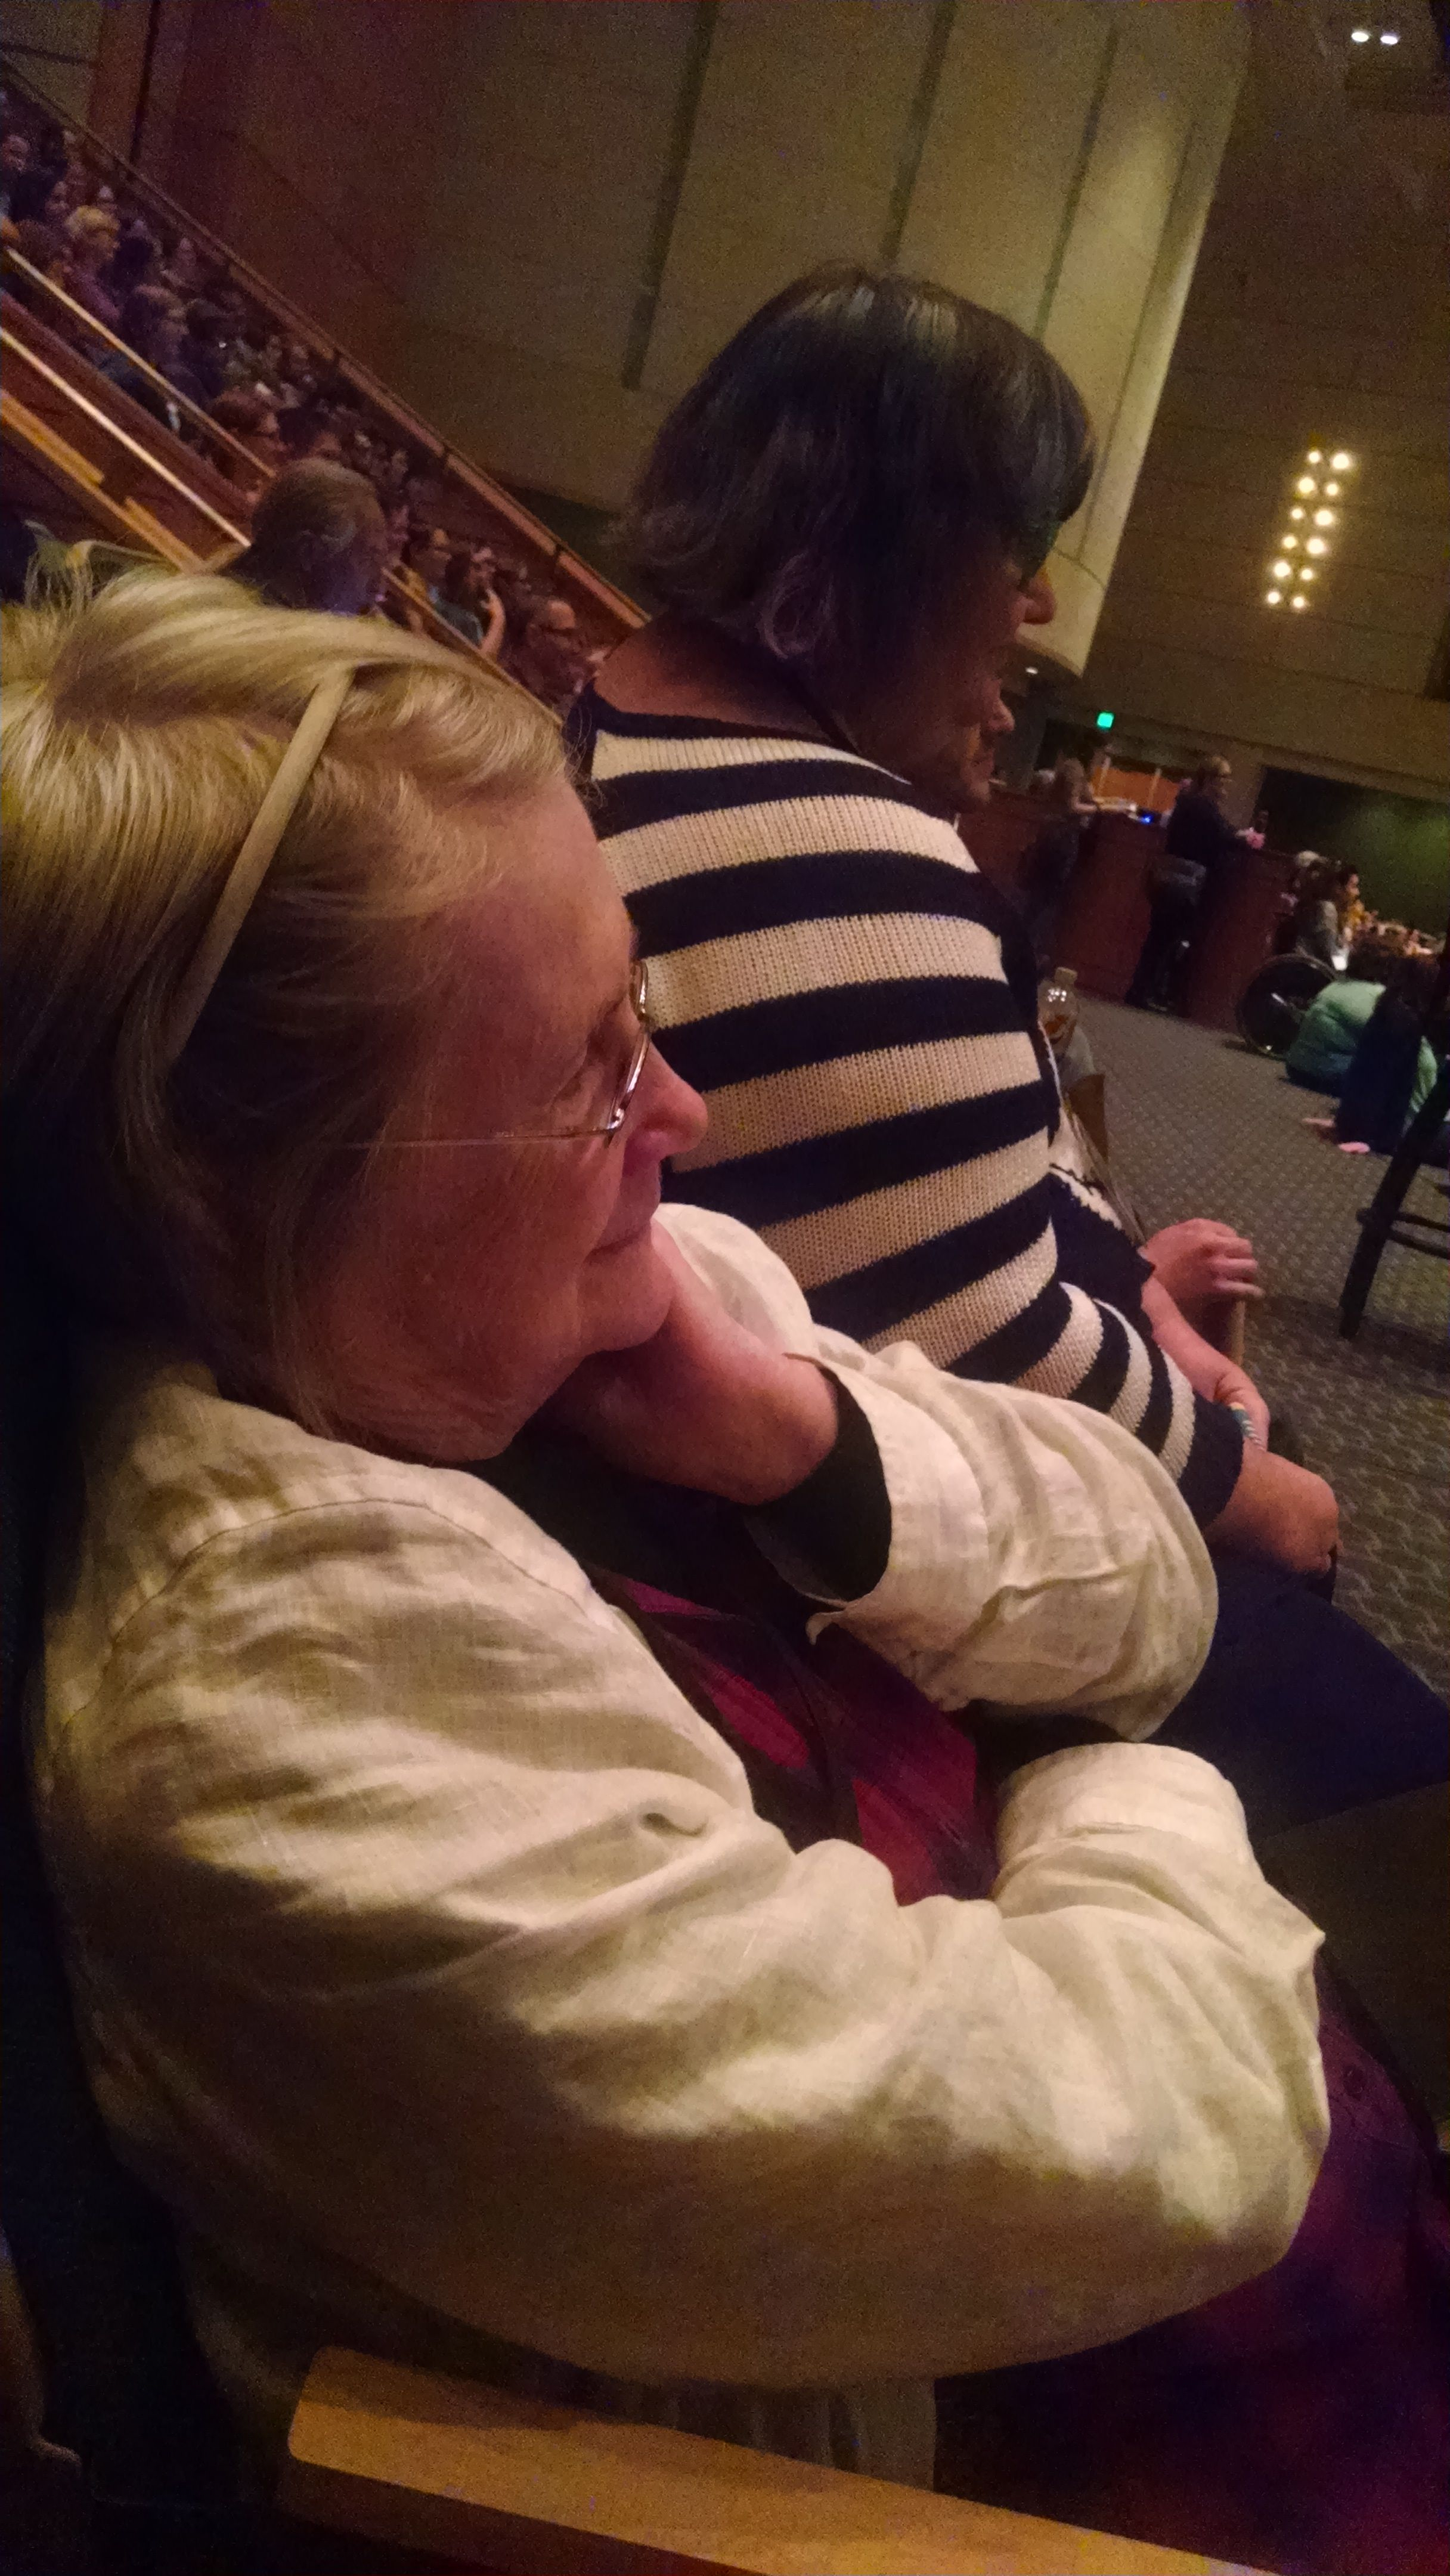 Why Stories Matter: My Introduction to NerdCon | Paula Reed Nancarrow  If you were paying attention (and it's not a judgment upon you if you weren't), you might have noticed that I did not post last Sunday. This was inadvertent. The previous week I made a spontaneous ...